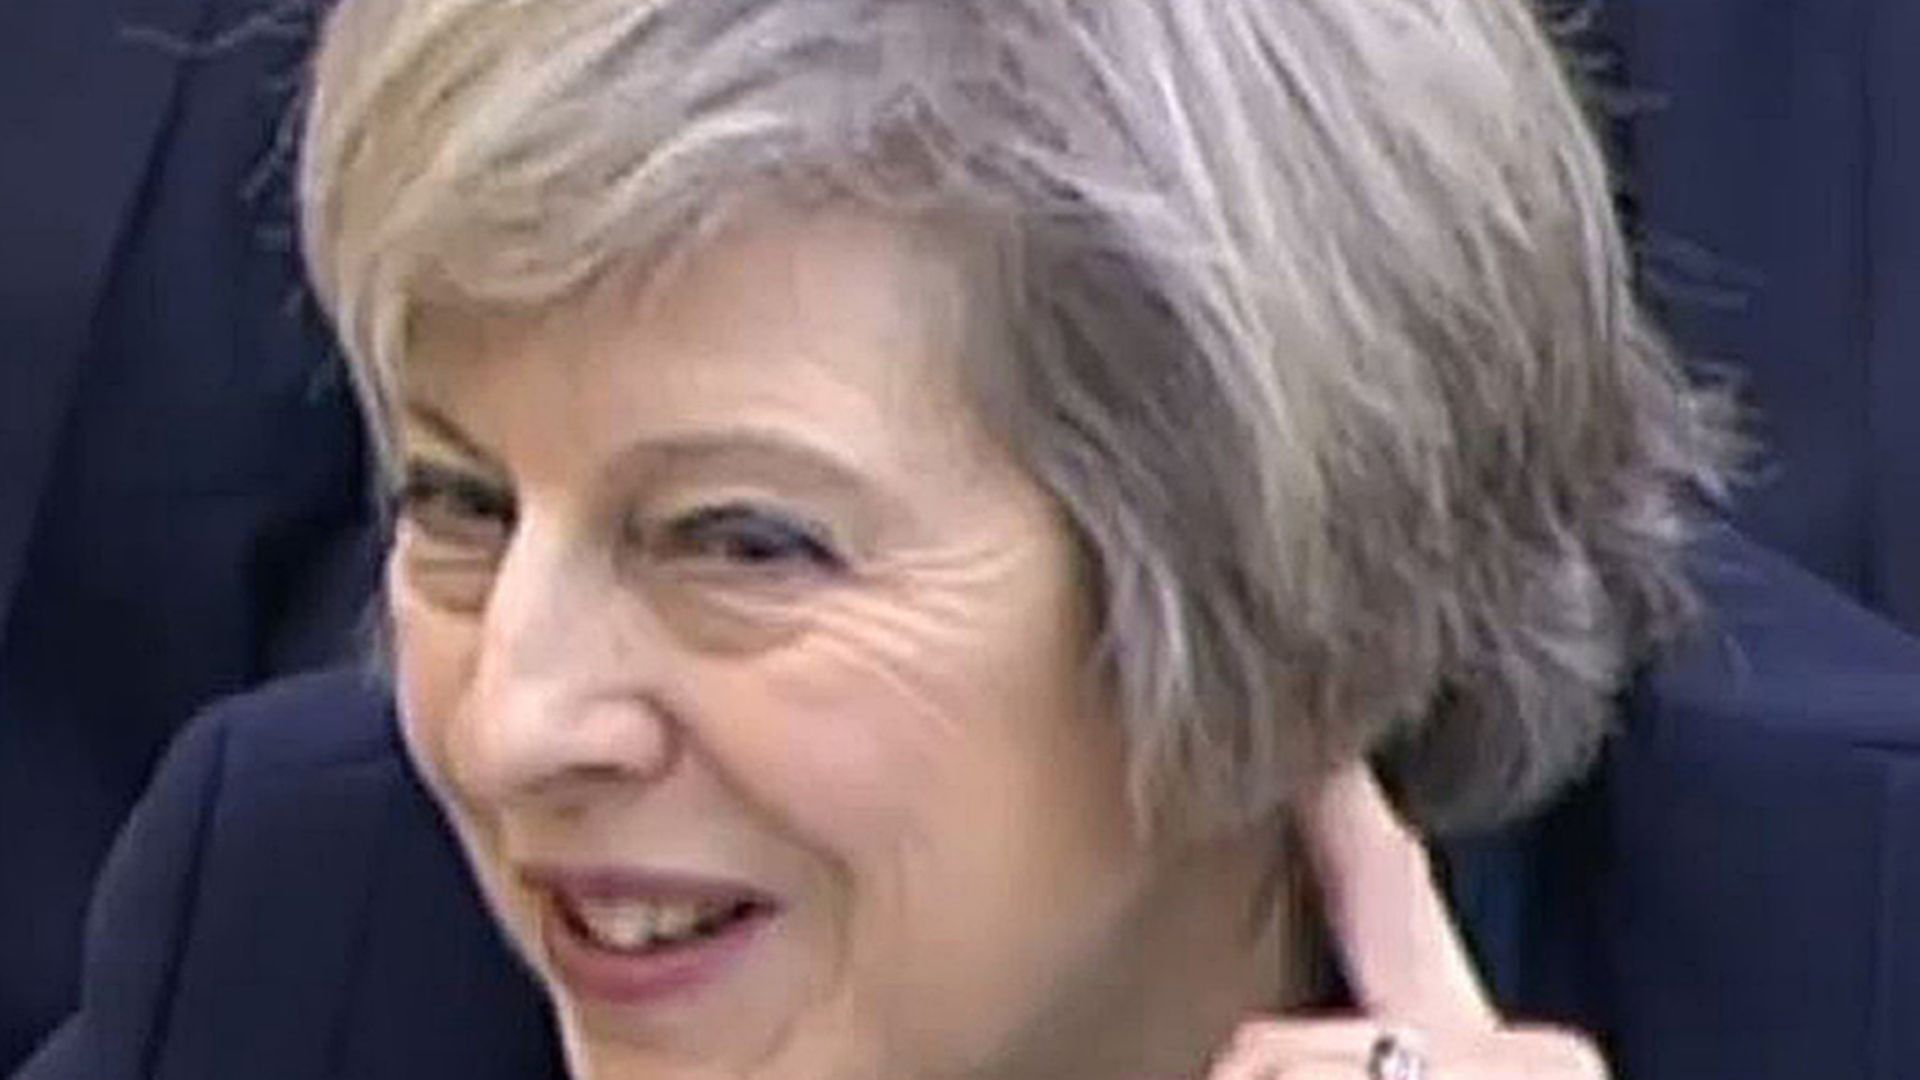 Prime Minister Theresa May gives evidence to the Commons Liaison Committee in Portcullis House, London, where she will be pressed to give further details about her plans for Brexit. Photograph: PA Images. - Credit: PA Wire/PA Images